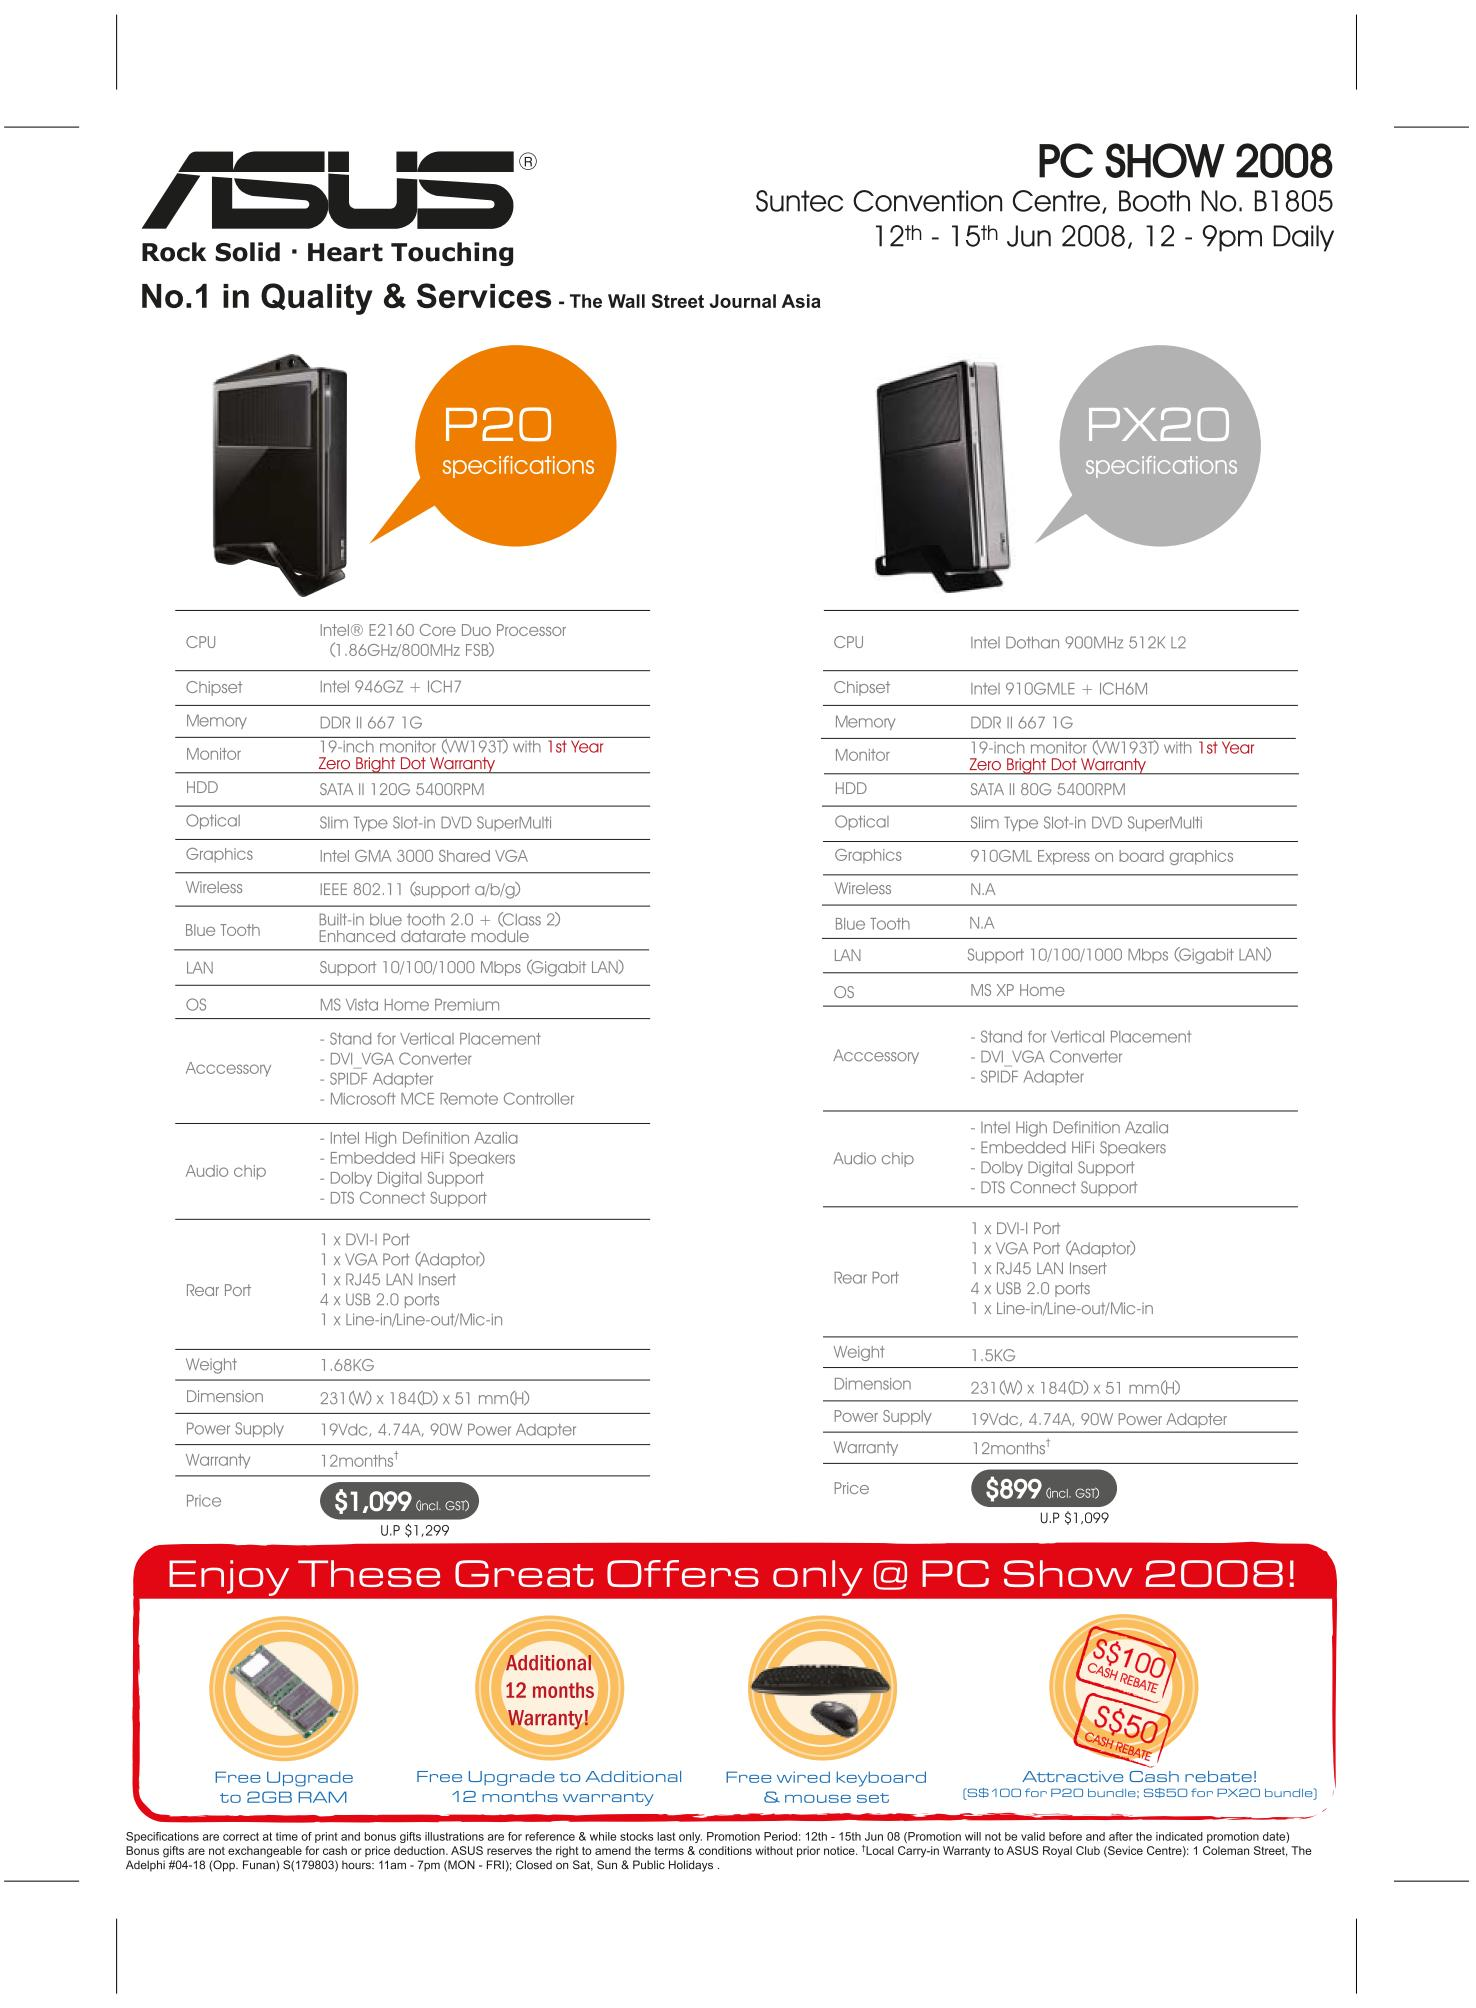 PC Show 2008 price list image brochure of Asus Nova Back.pdf 01